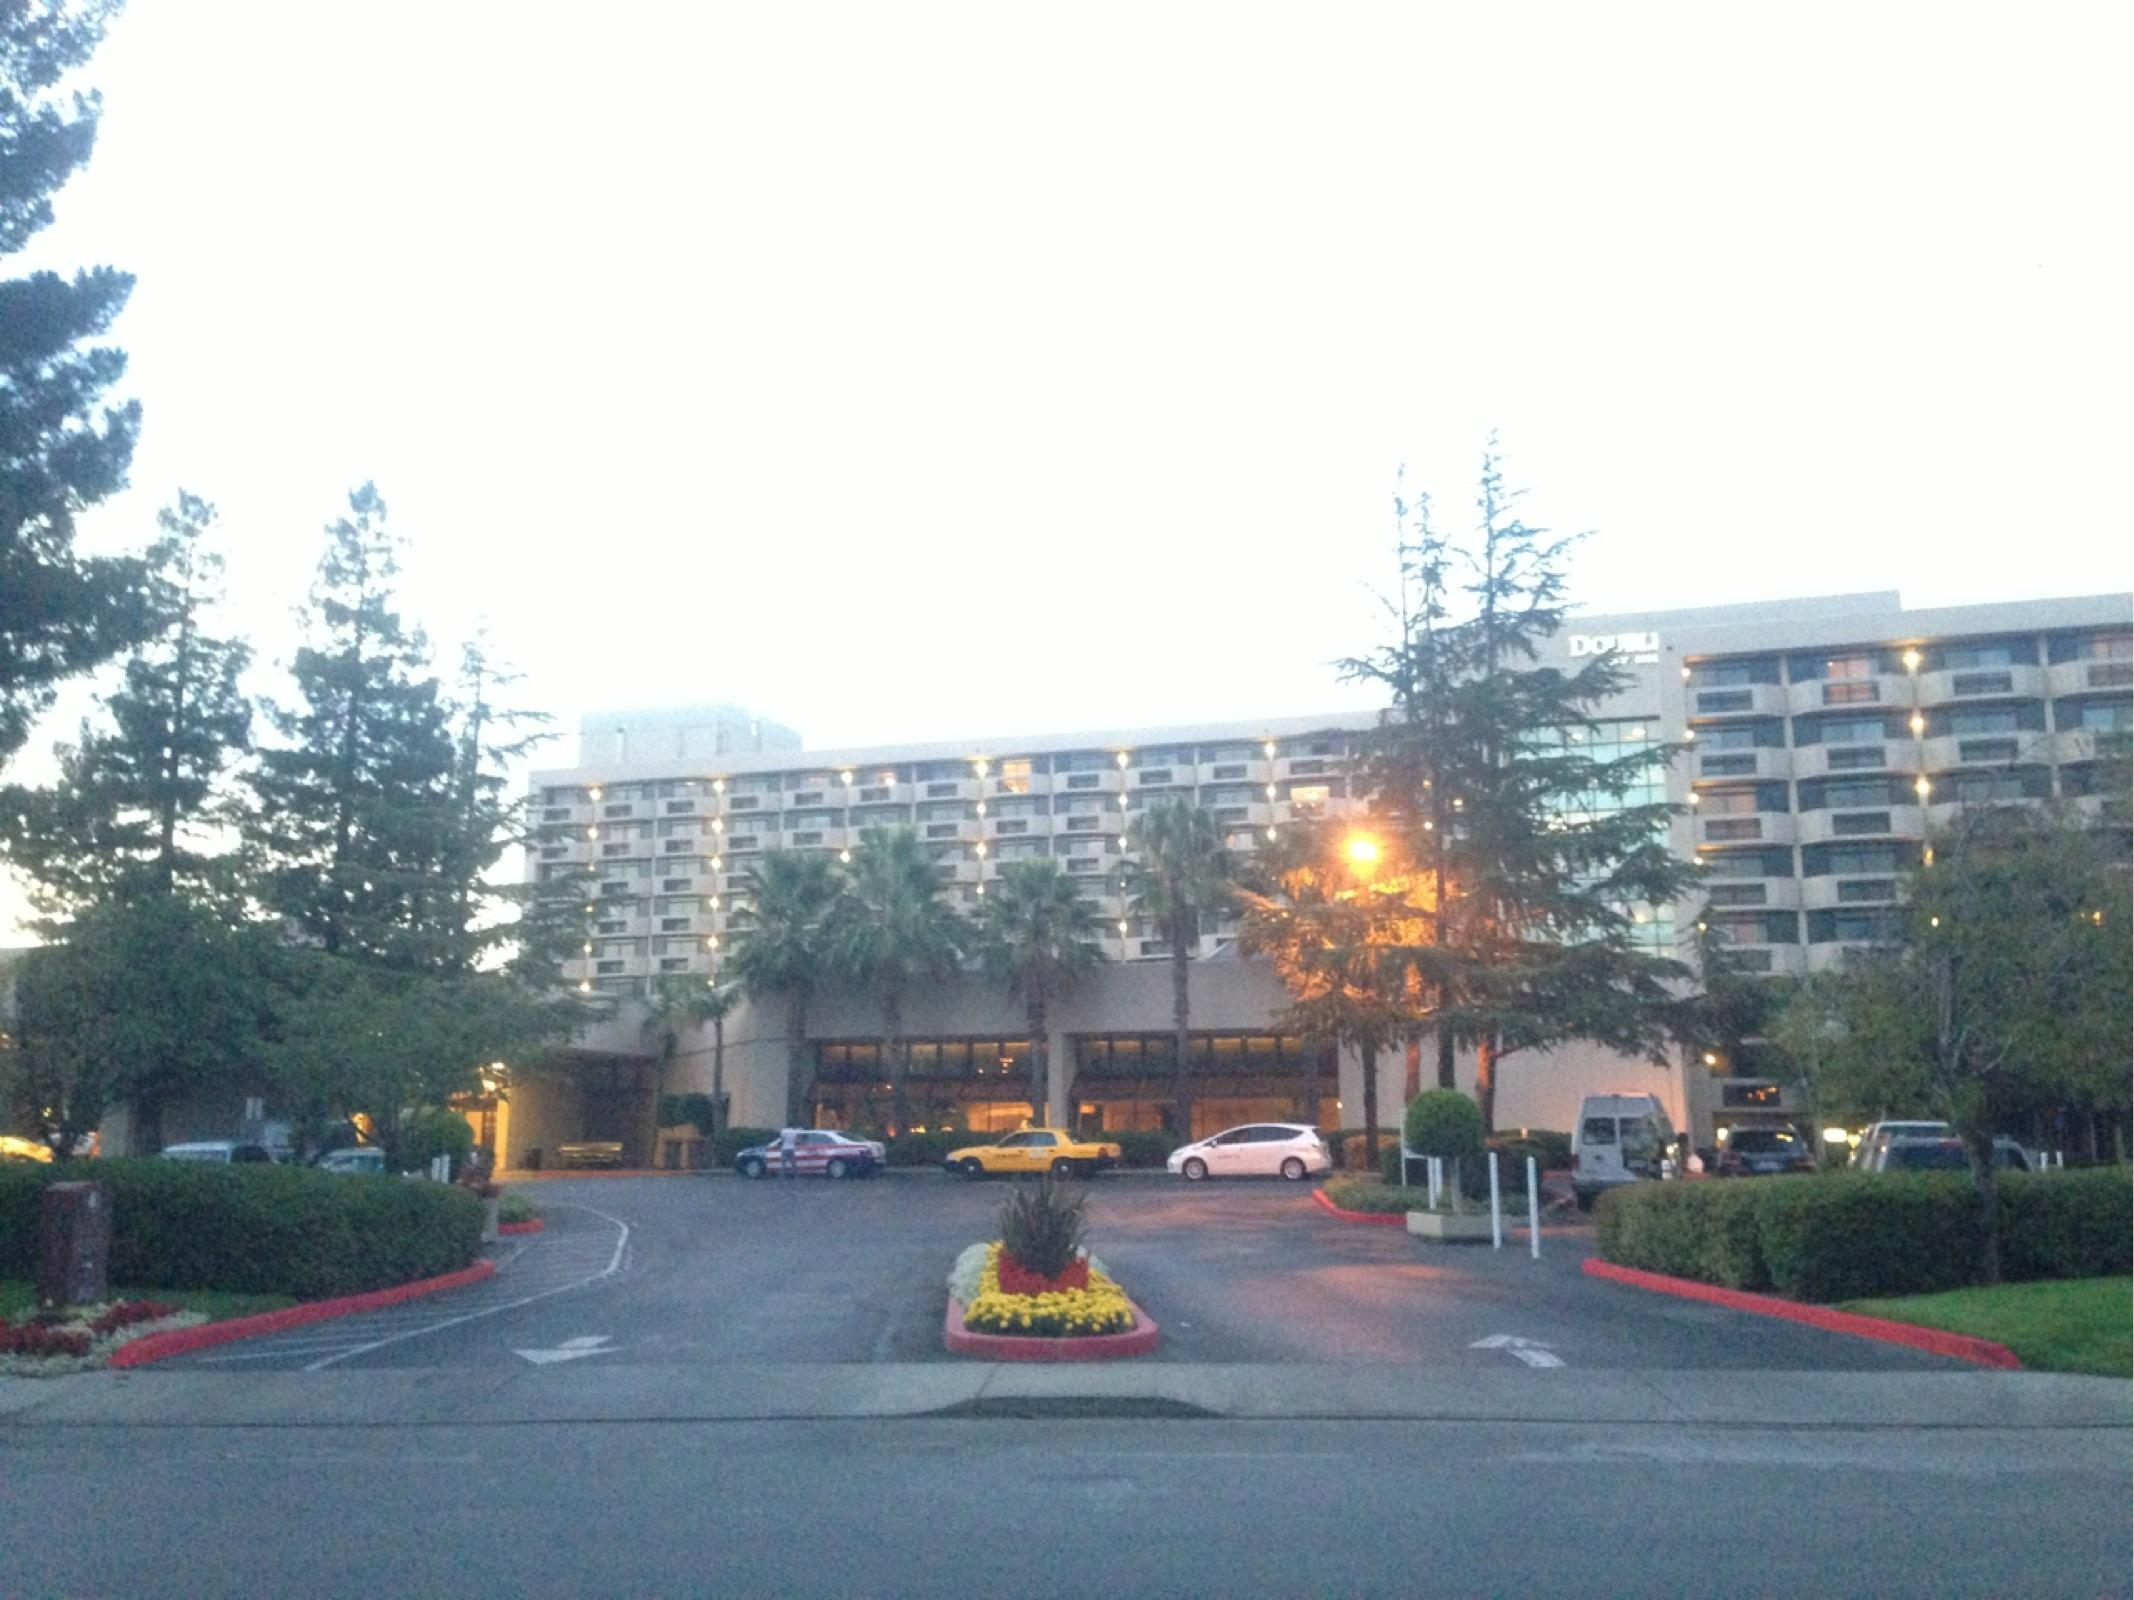 Doubletree Hotel San Jose Doubletree Hotel San Jose which is also known as SJC Airport Parking at Doubletree Hotel San Jose, is just 1 of US Airport parking lots offered by agencja-nieruchomosci.tk across 62 airports.